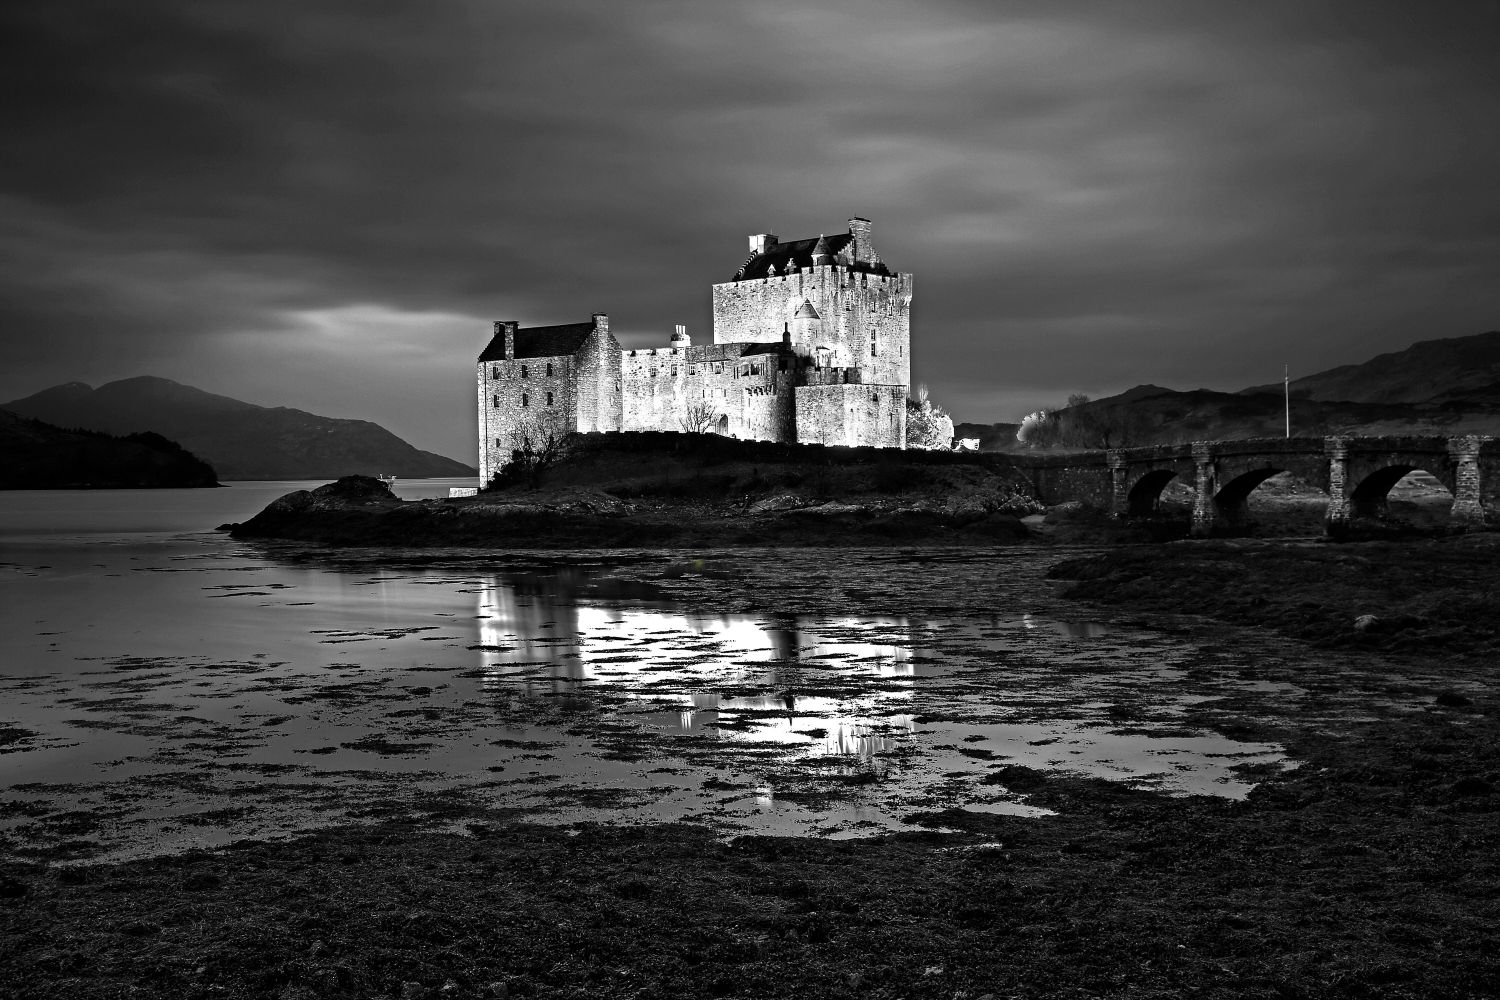 Late evening light on Eilean Donan Castle